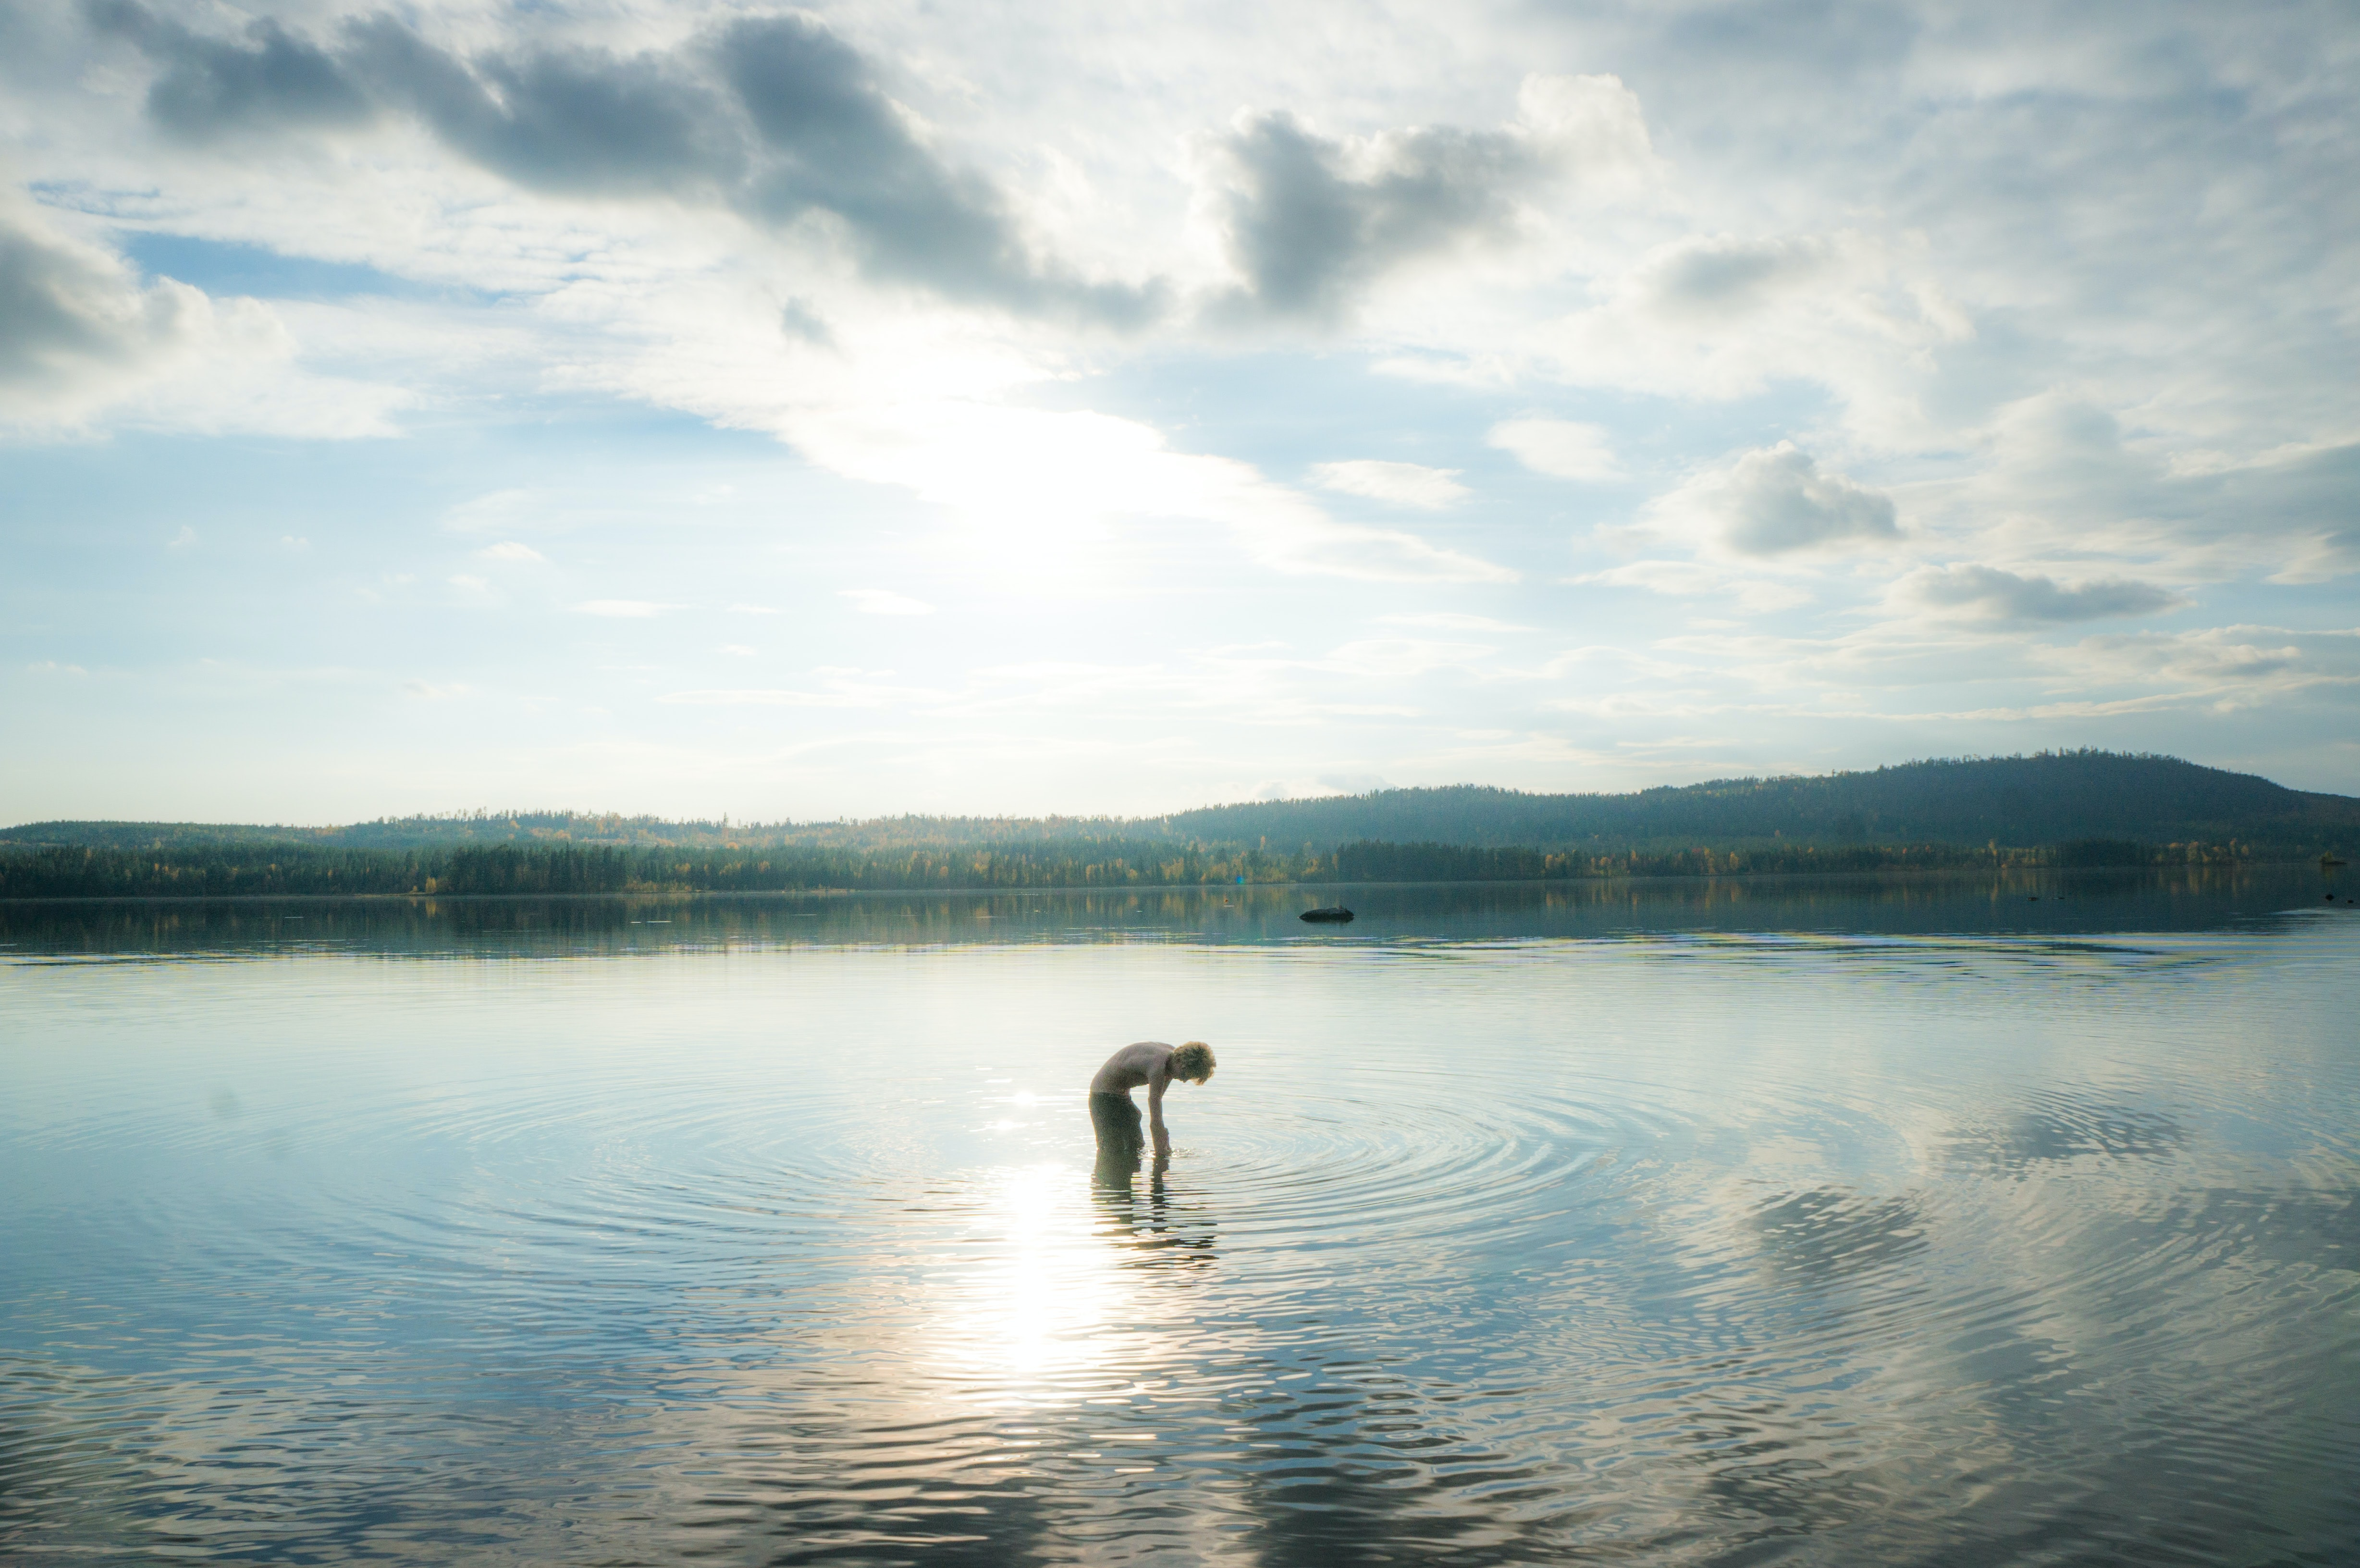 person standing on body of water